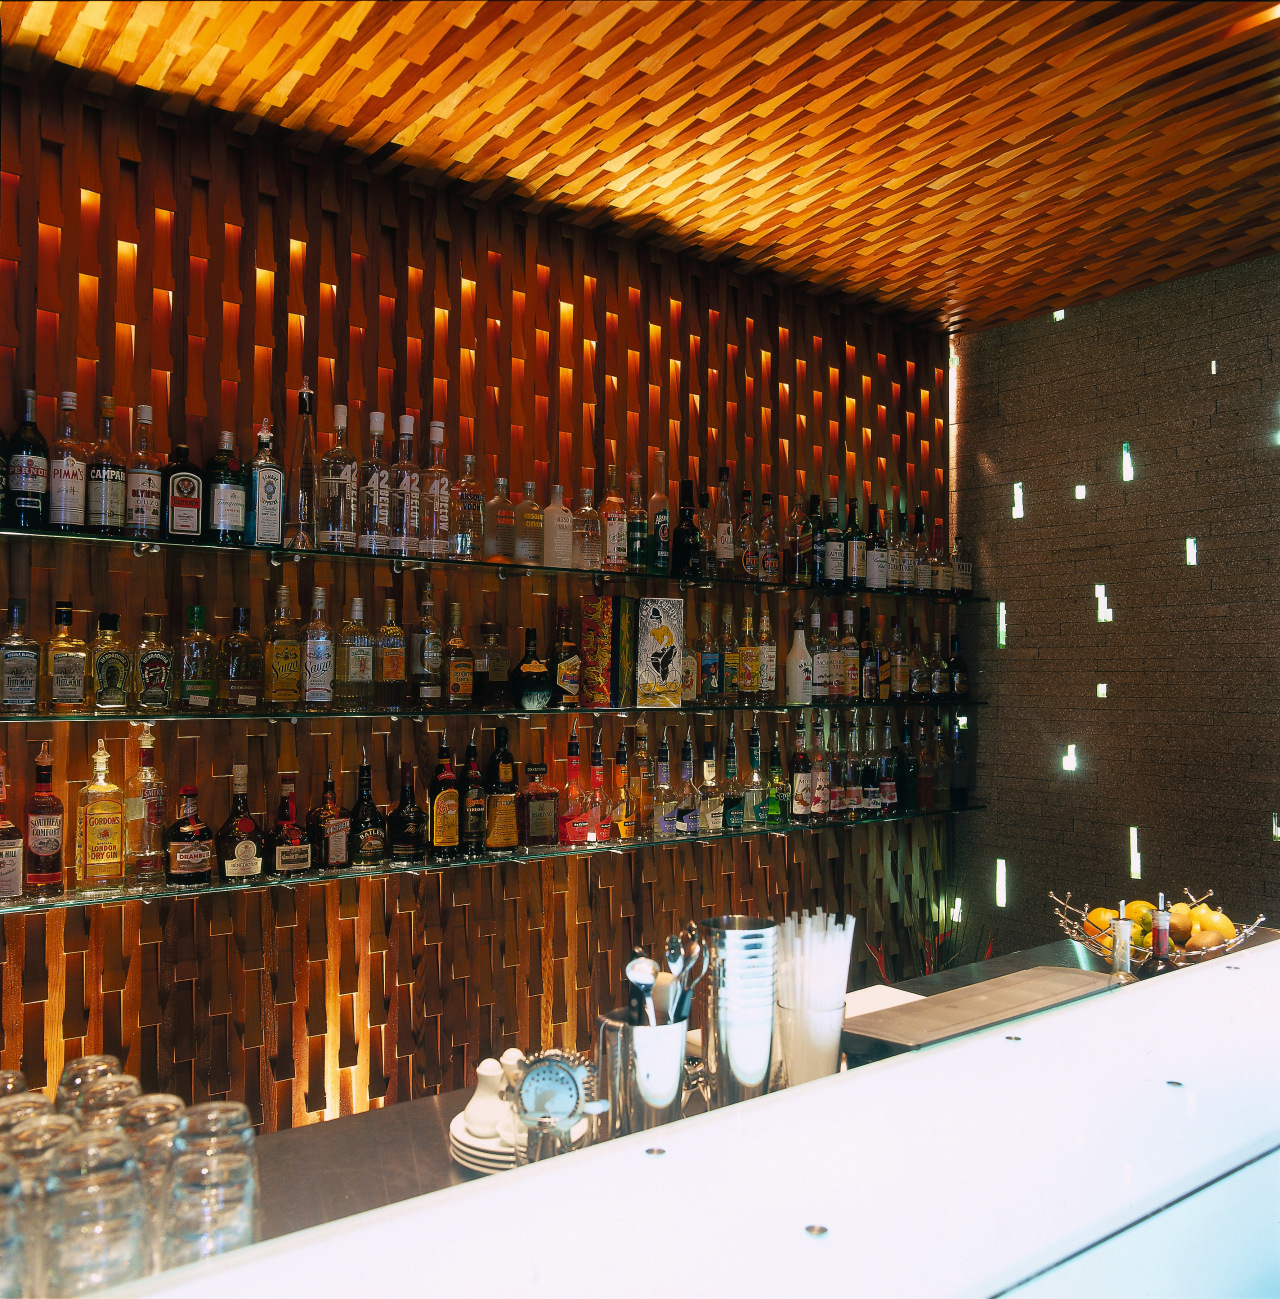 Polished glass restaurant bar with screens of timber bar, liquor store, restaurant, brown